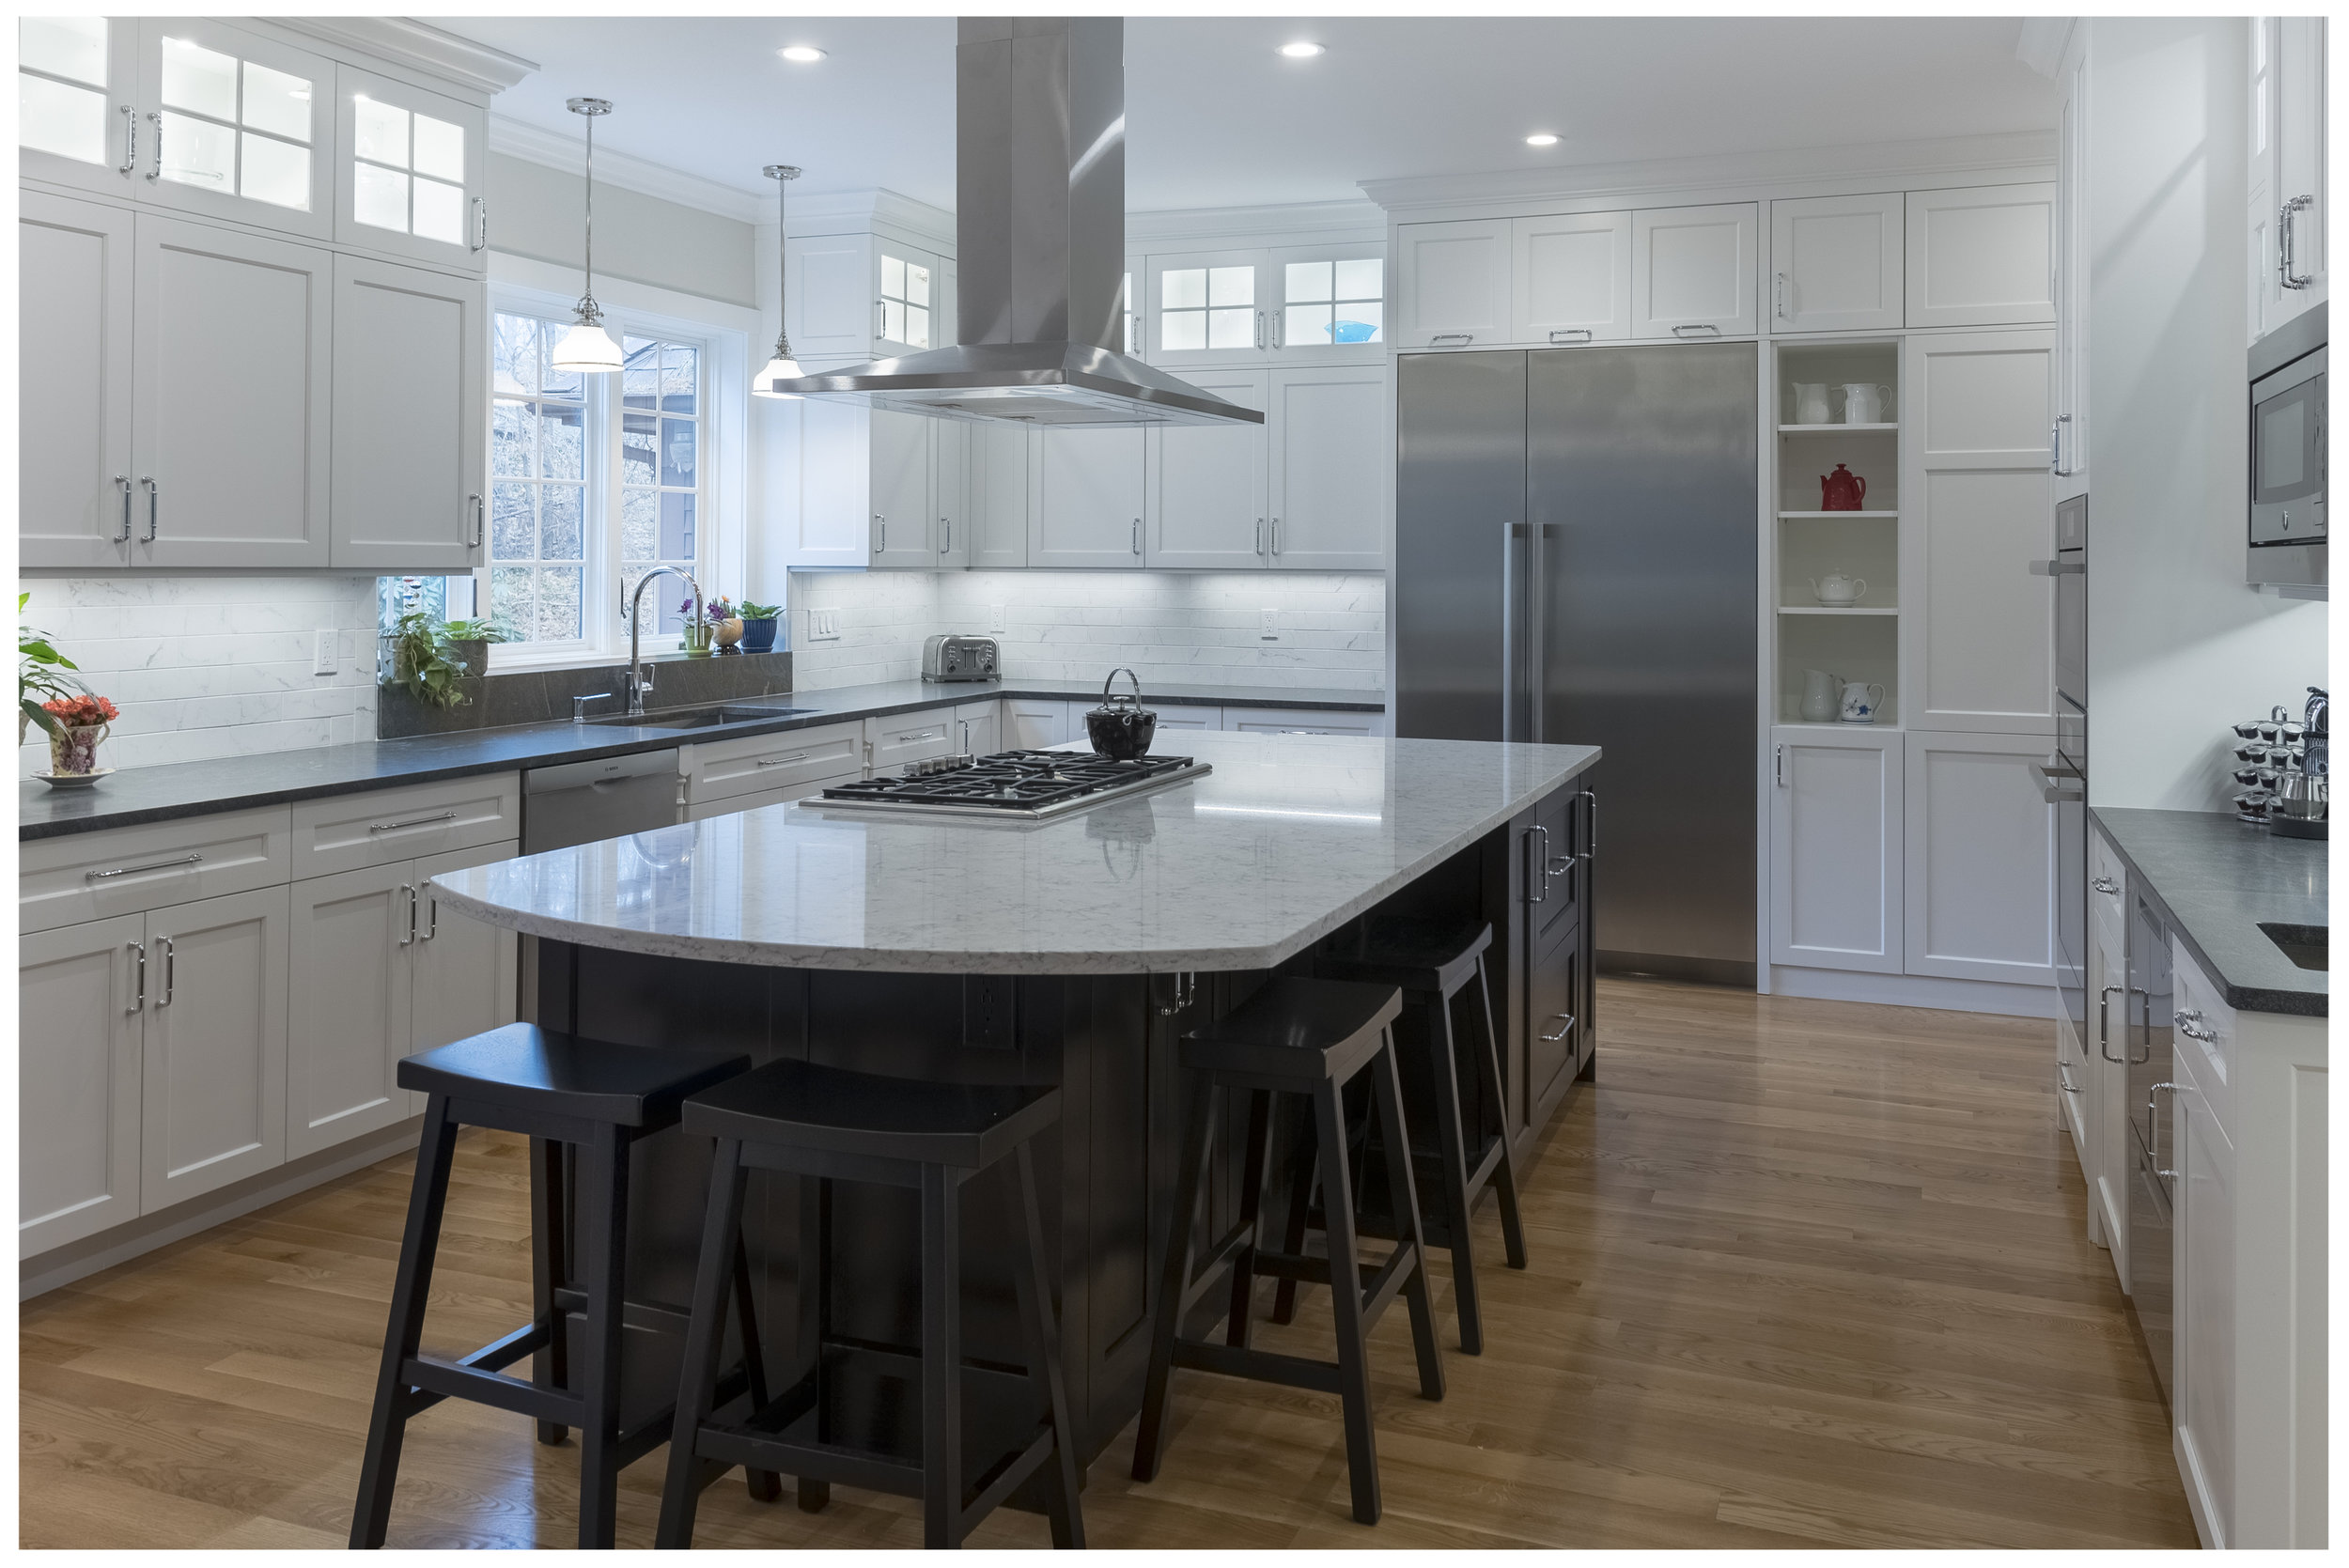 KitchenVisions-Transitional-Kitchen-Acton-005.jpg